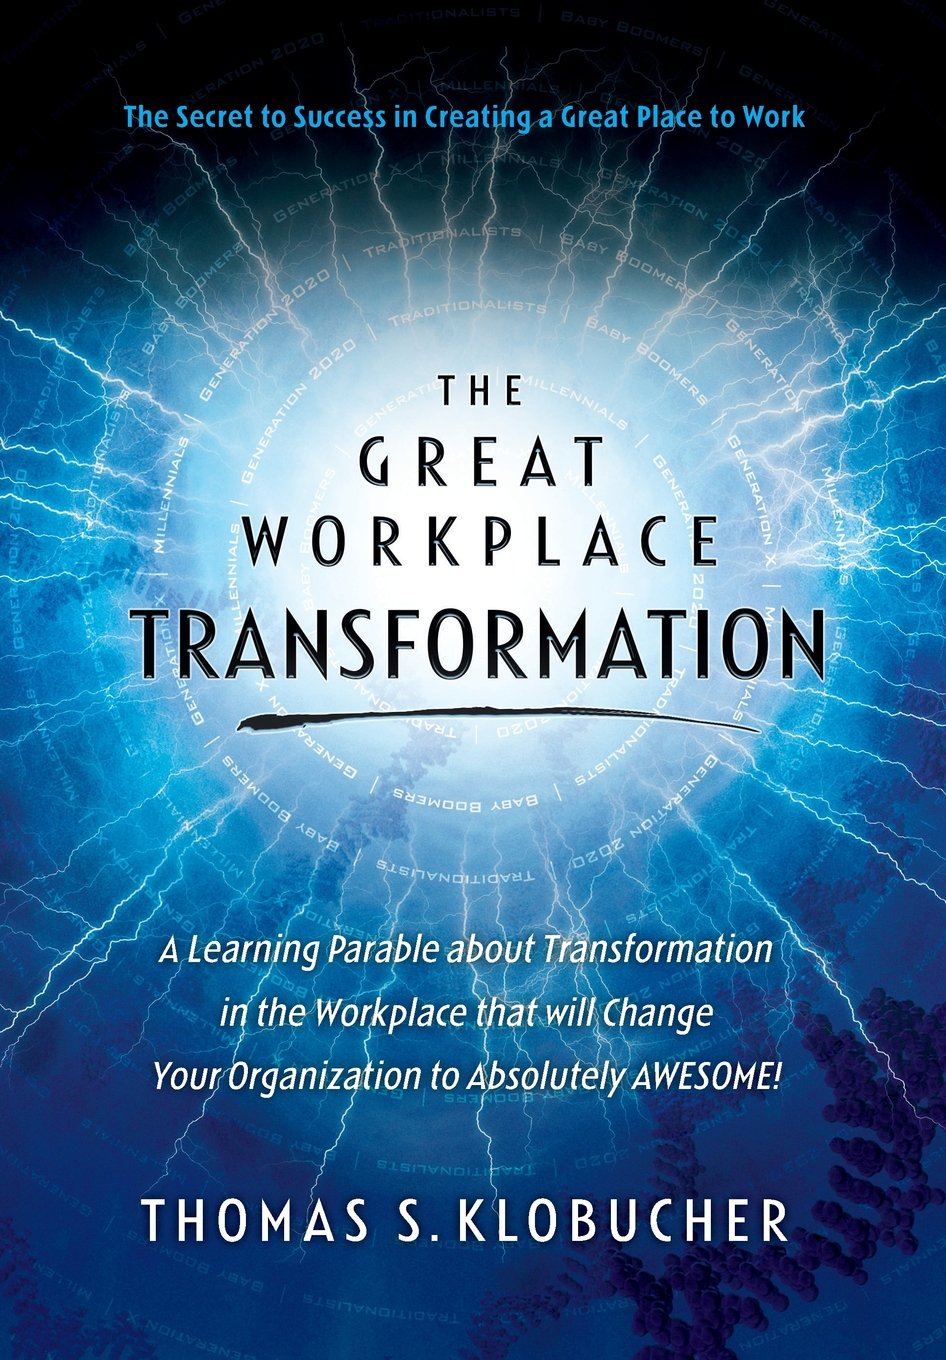 The Great Workplace Transformation